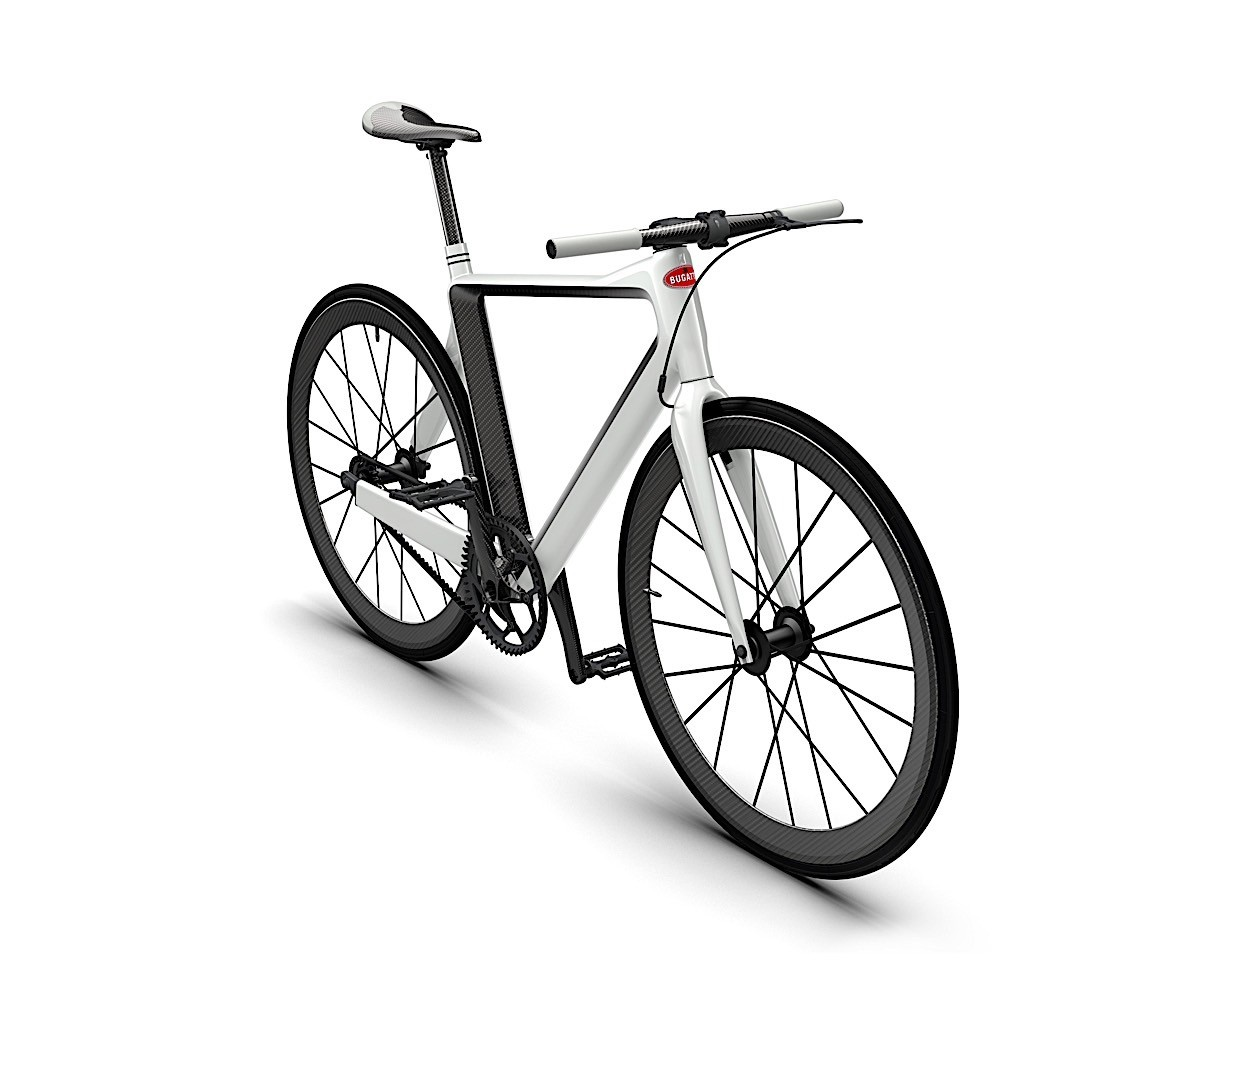 Bugatti And Pg Releasing New Carbon Fiber Luxury Bicycle